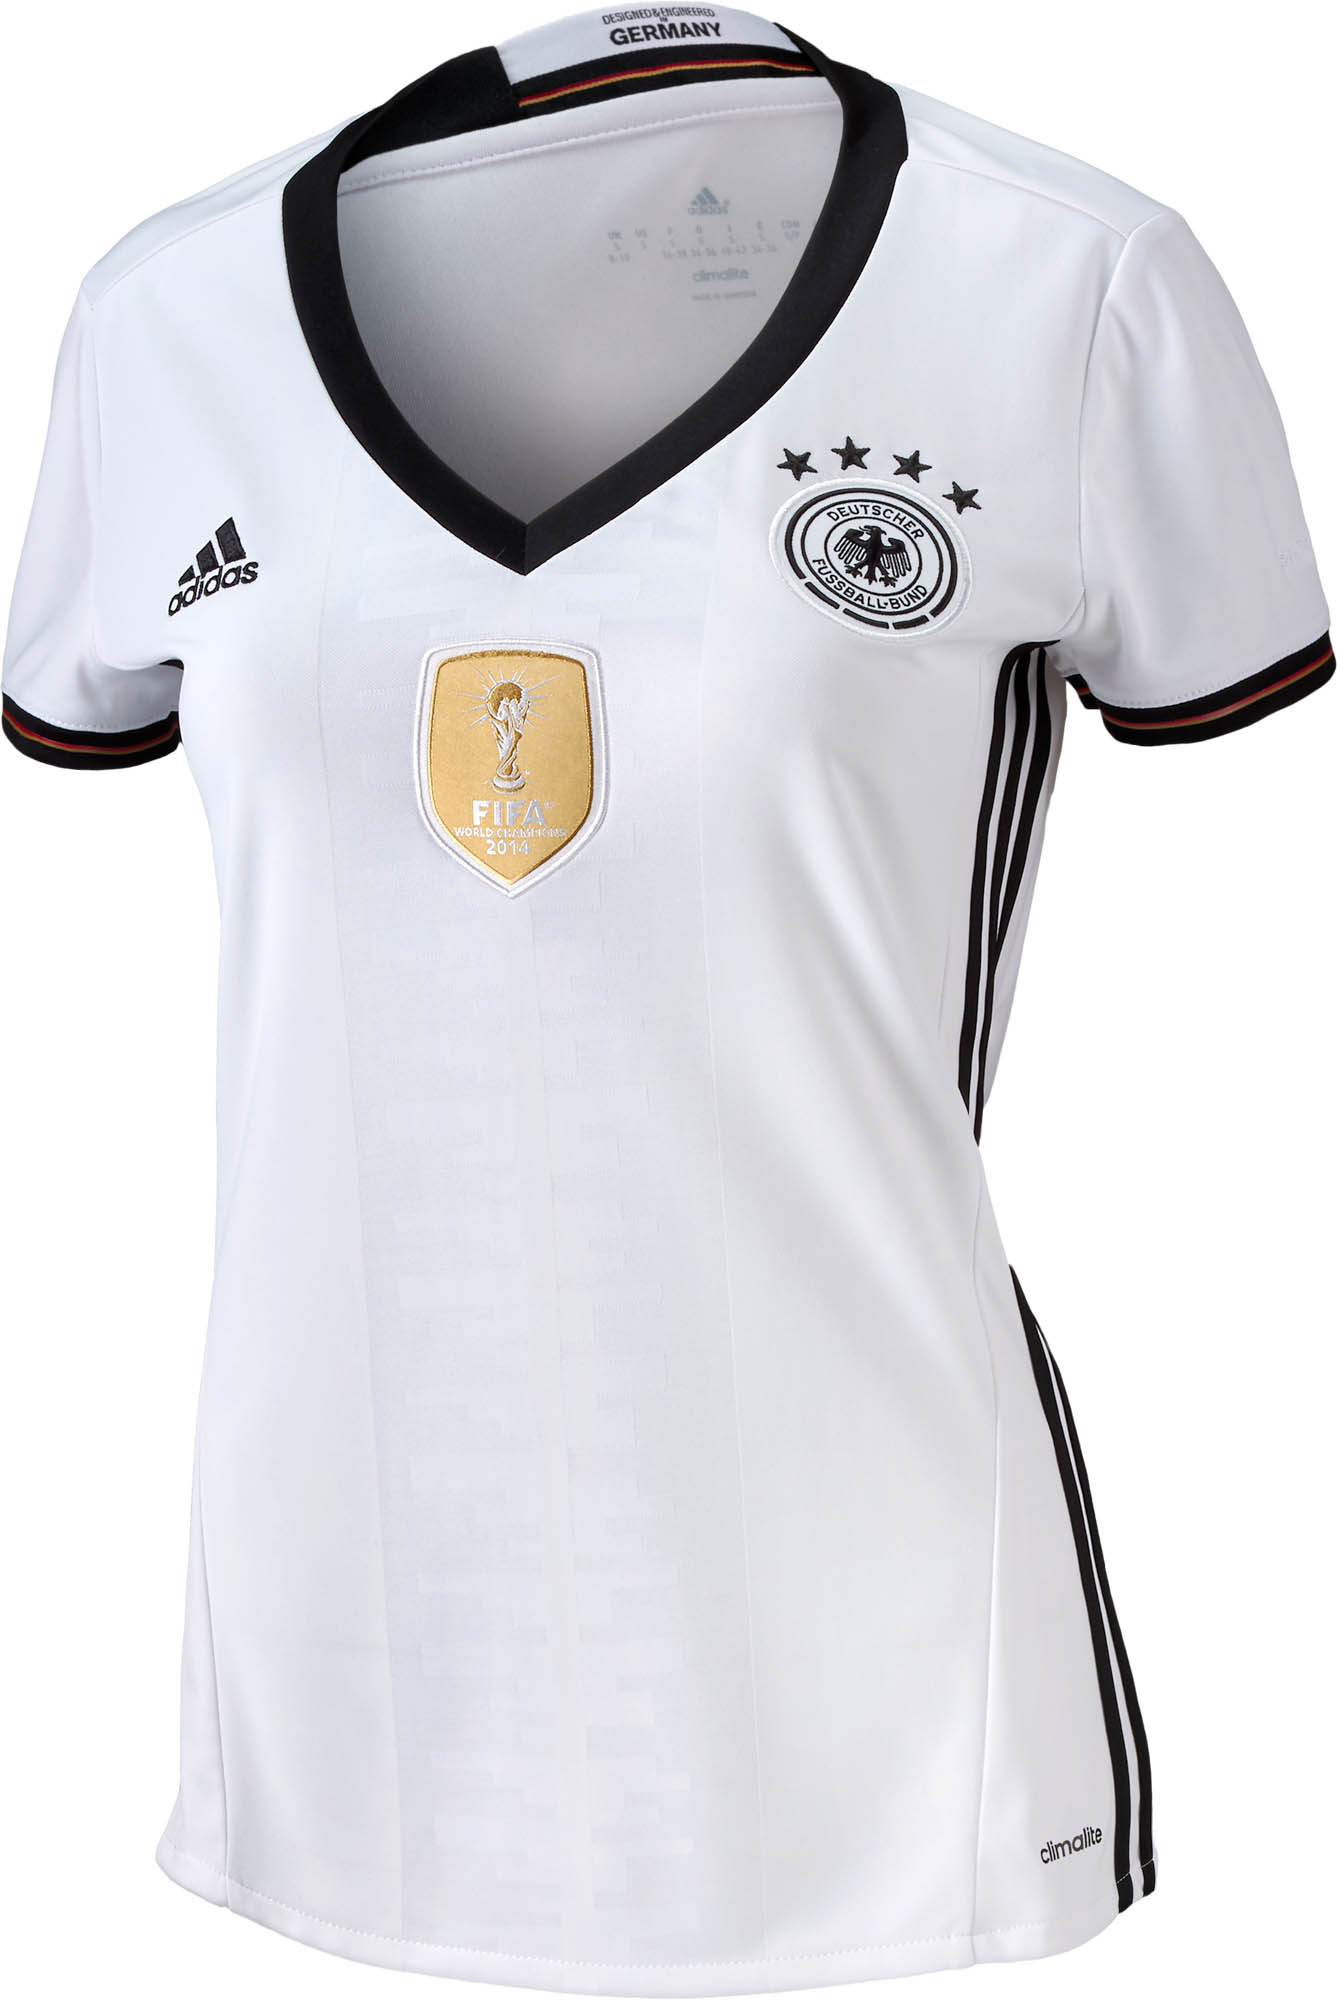 Germany Women's Home Jersey 2016 - adidas Germany Soccer ... - photo#40